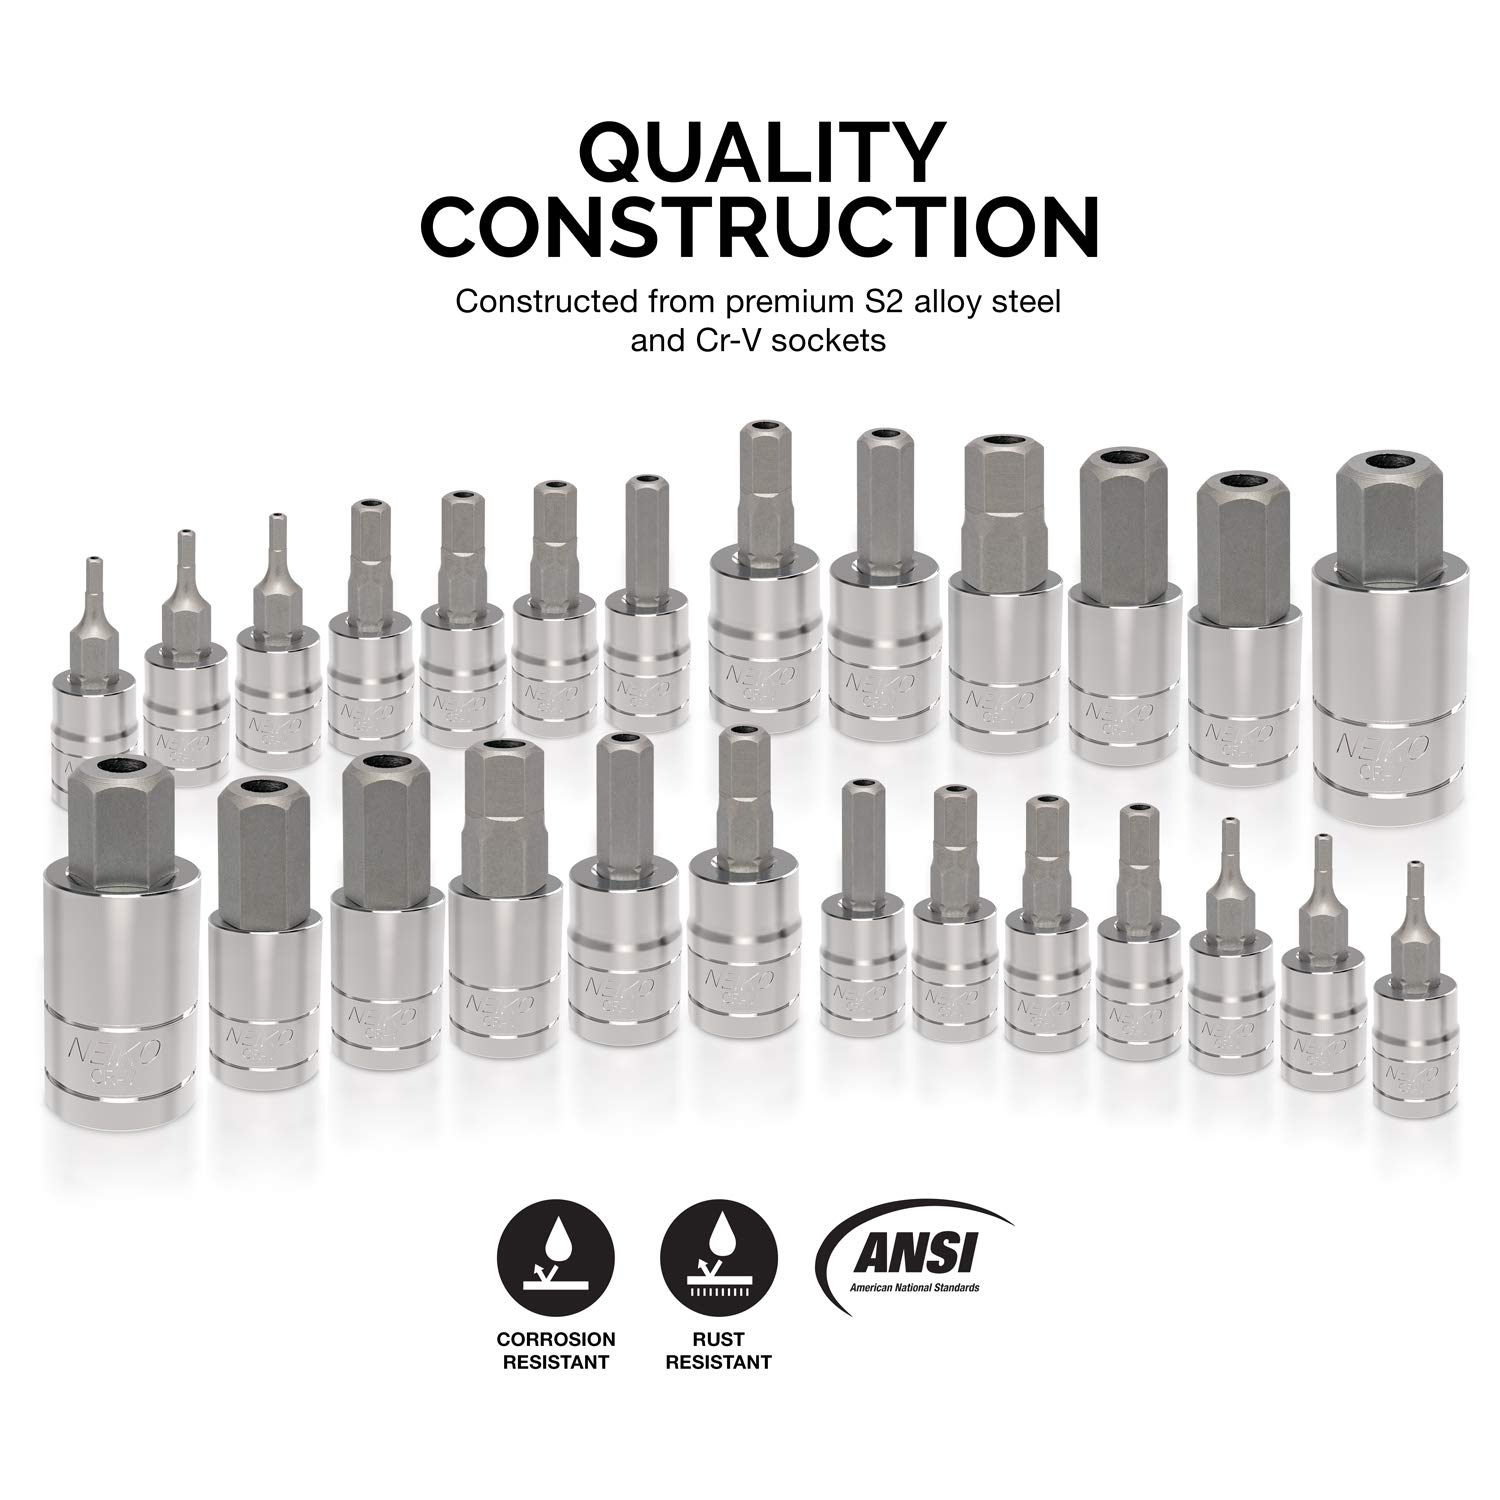 Neiko 01144A Tamper-Proof Hex Bit Socket Set, 26 Pieces | SAE 5/64-9/16'', Metric 2-14MM by Neiko (Image #2)